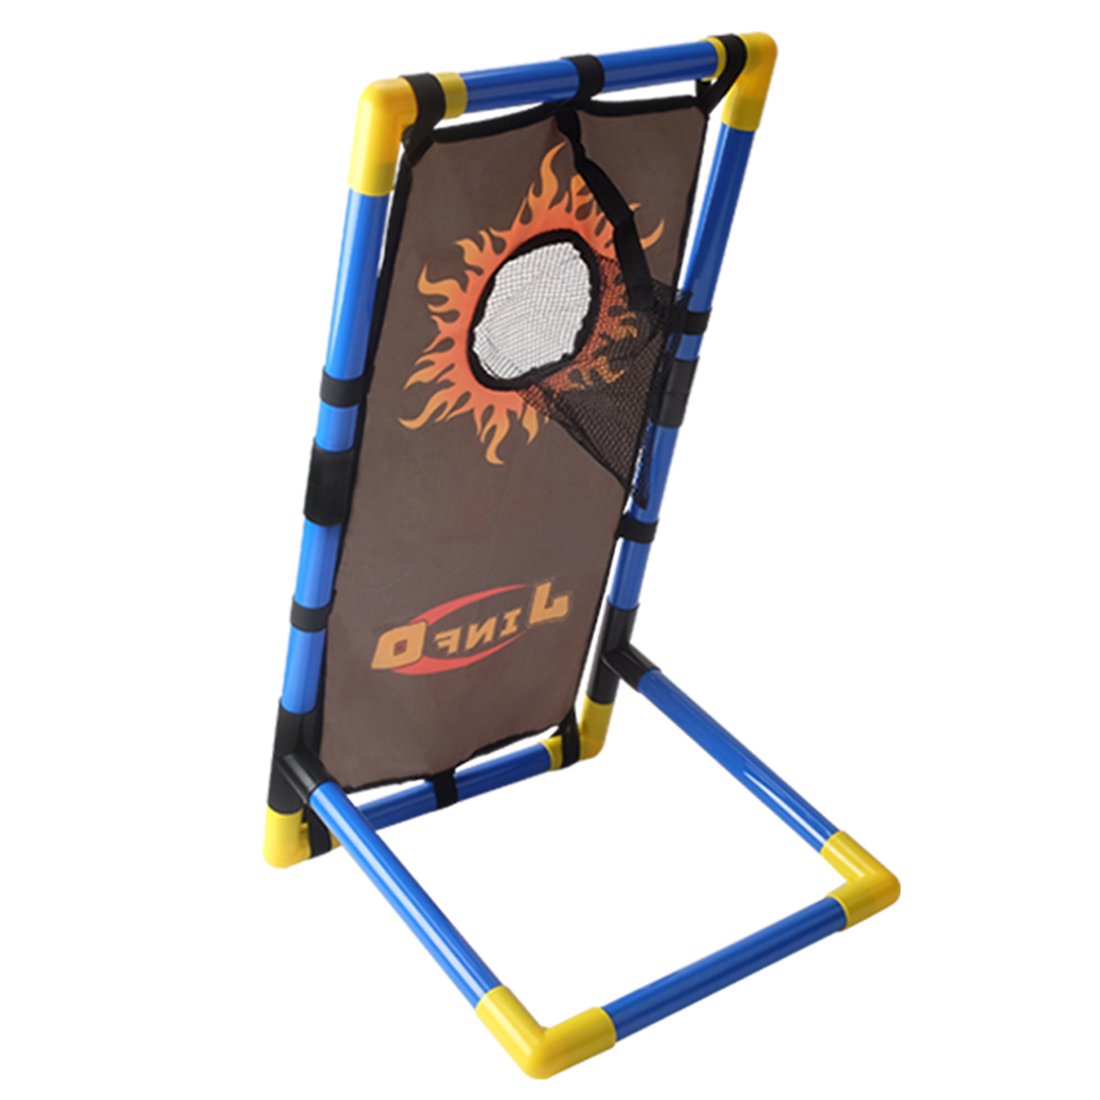 Image 2 - 2019 Hot Sale Stand Scoring Target with Frame Rack Outdoor Tactical Shooting Training Aim for Nerf Soft Dart Paintball Airsoft-in Paintball Accessories from Sports & Entertainment